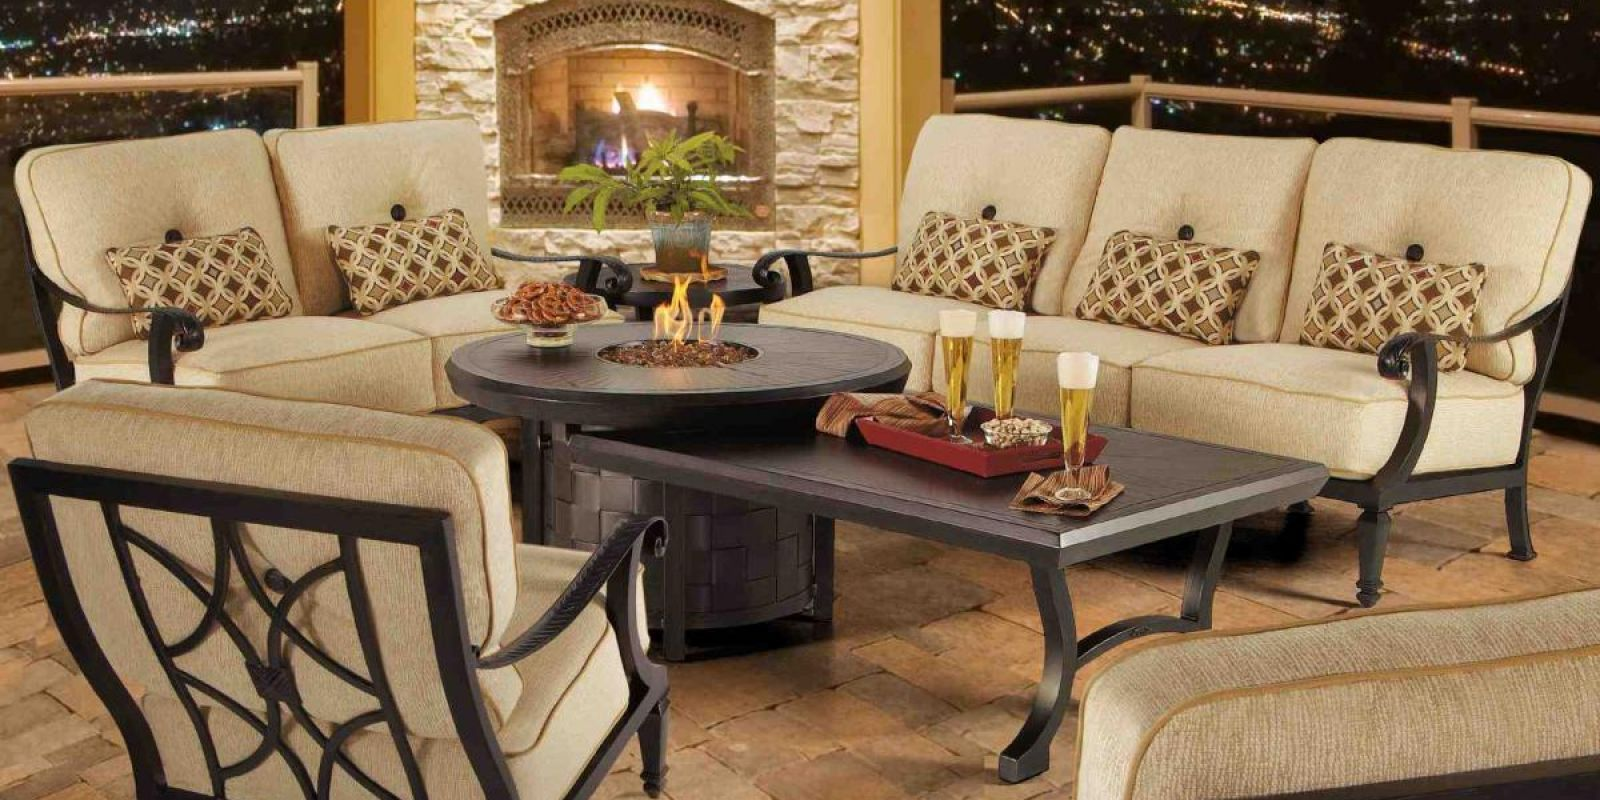 Outdoor Patio Design Specialist | American Casual Living on Porch & Patio Casual Living id=42439